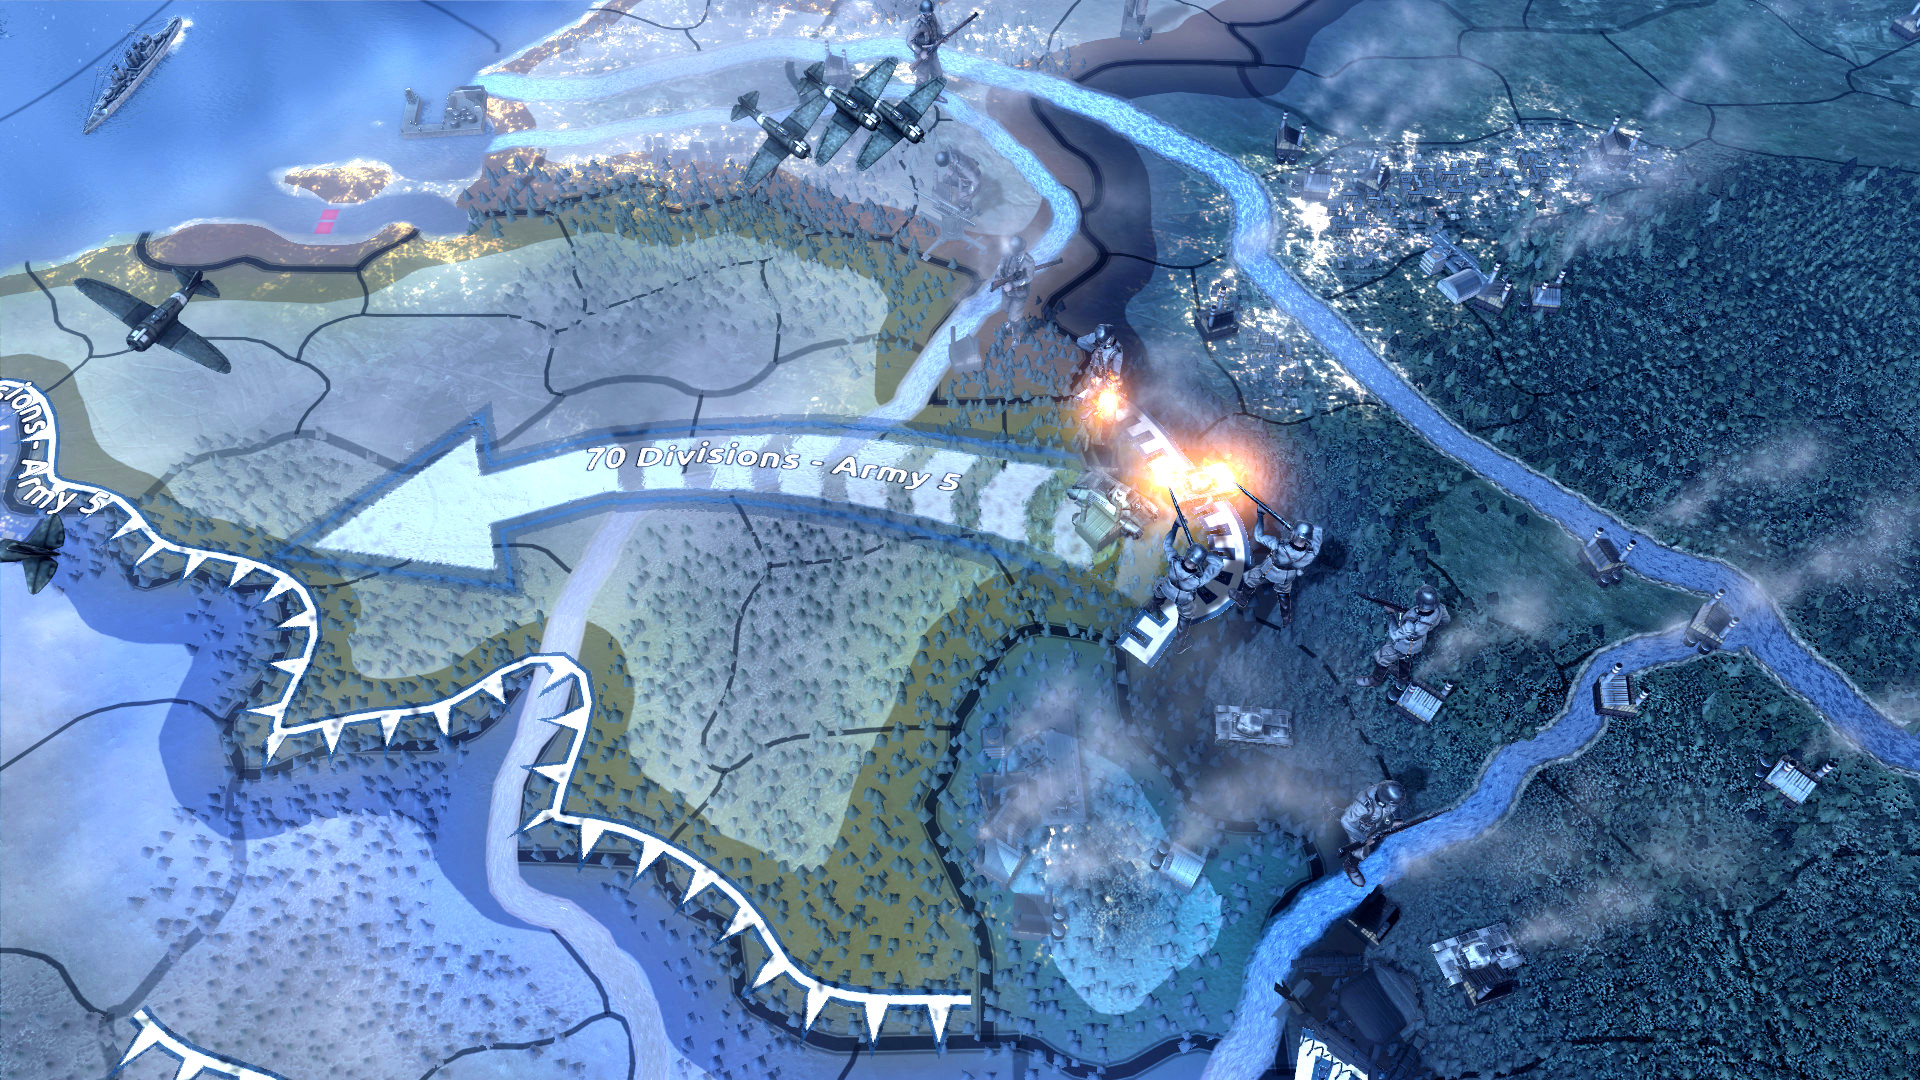 Hearts of Iron 4's grand campaign is live, using a custom mod developed in six days